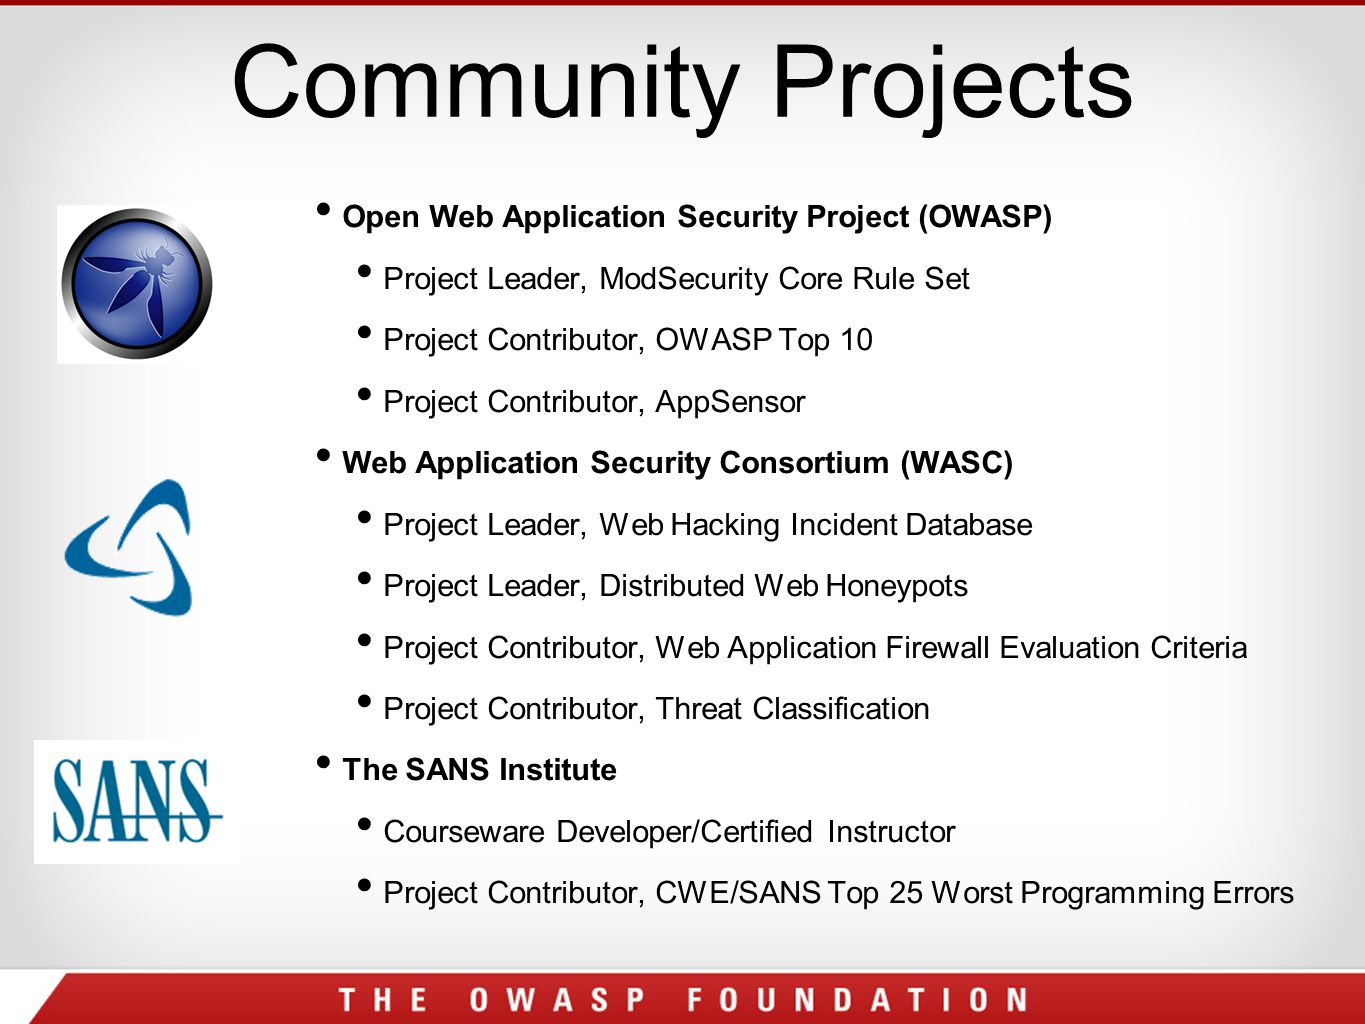 Community Projects Open Web Application Security Project (OWASP) Project Leader, ModSecurity Core Rule Set Project Contributor, OWASP Top 10 Project Contributor, AppSensor Web Application Security Consortium (WASC) Project Leader, Web Hacking Incident Database Project Leader, Distributed Web Honeypots Project Contributor, Web Application Firewall Evaluation Criteria Project Contributor, Threat Classification The SANS Institute Courseware Developer/Certified Instructor Project Contributor, CWE/SANS Top 25 Worst Programming Errors